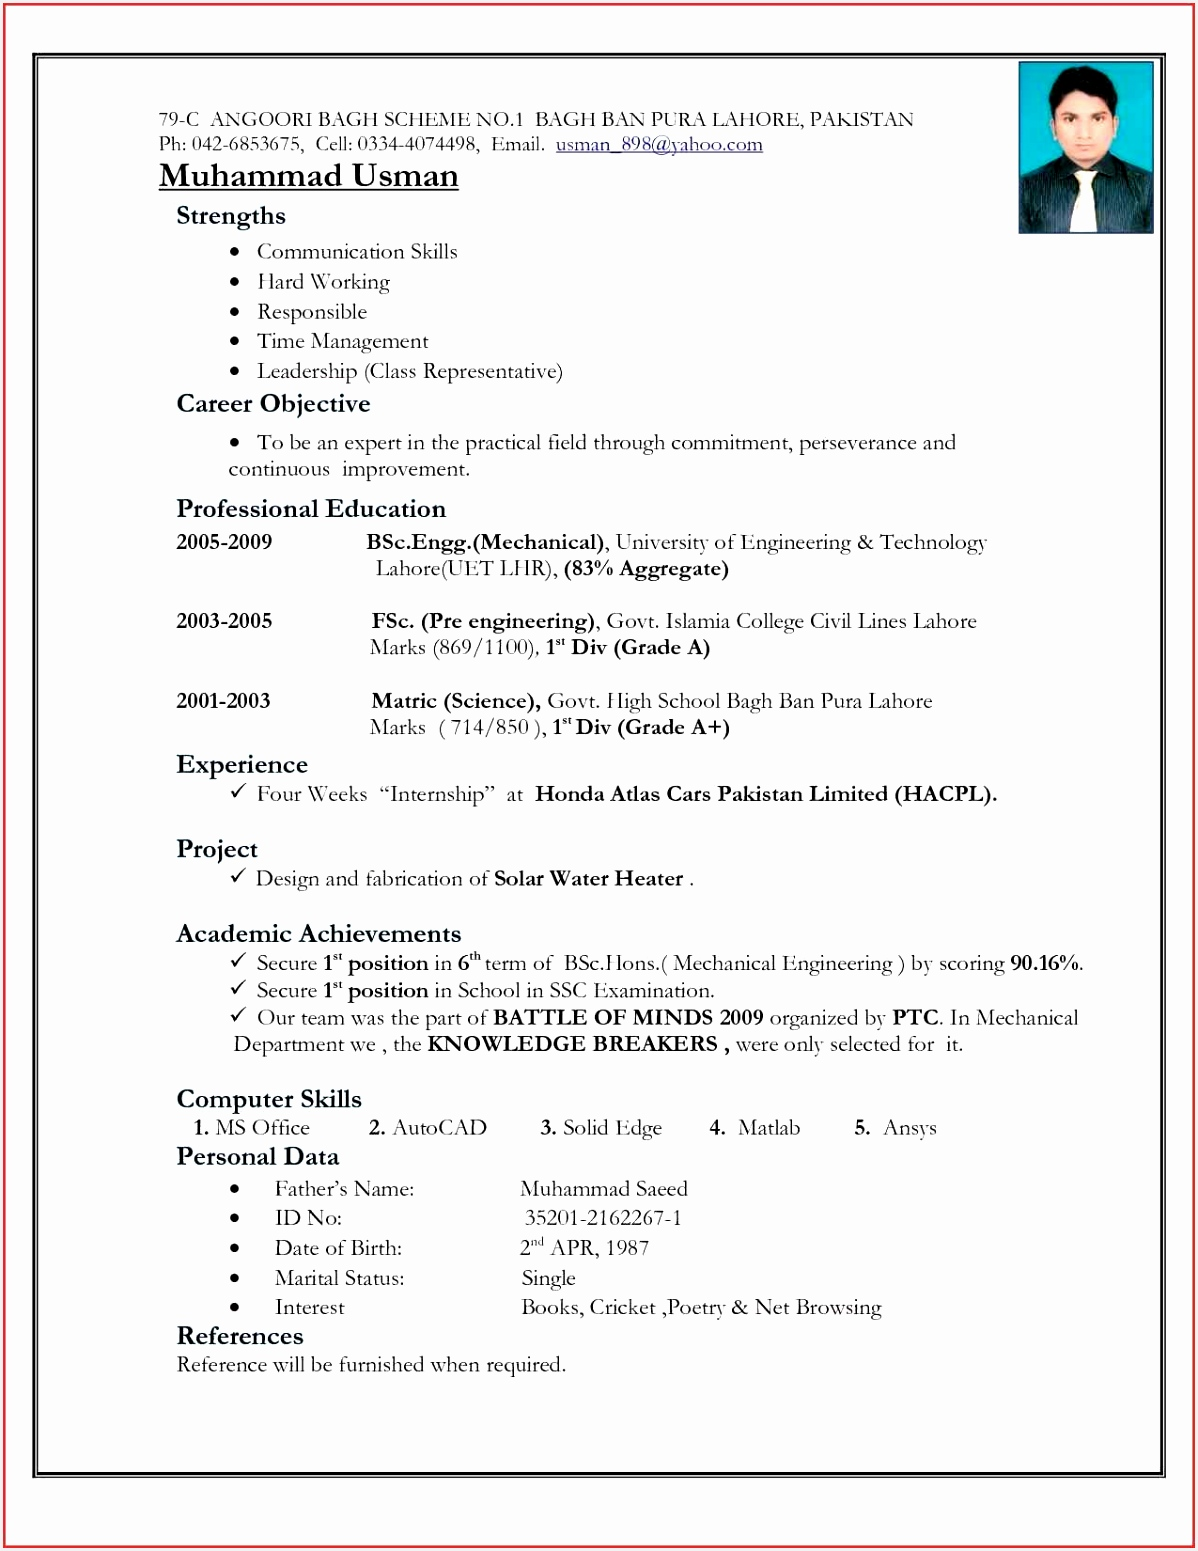 Resumes format for Freshers N8daq Luxury Good Resume formats Best Of Best Resume format for Freshers Free15511198